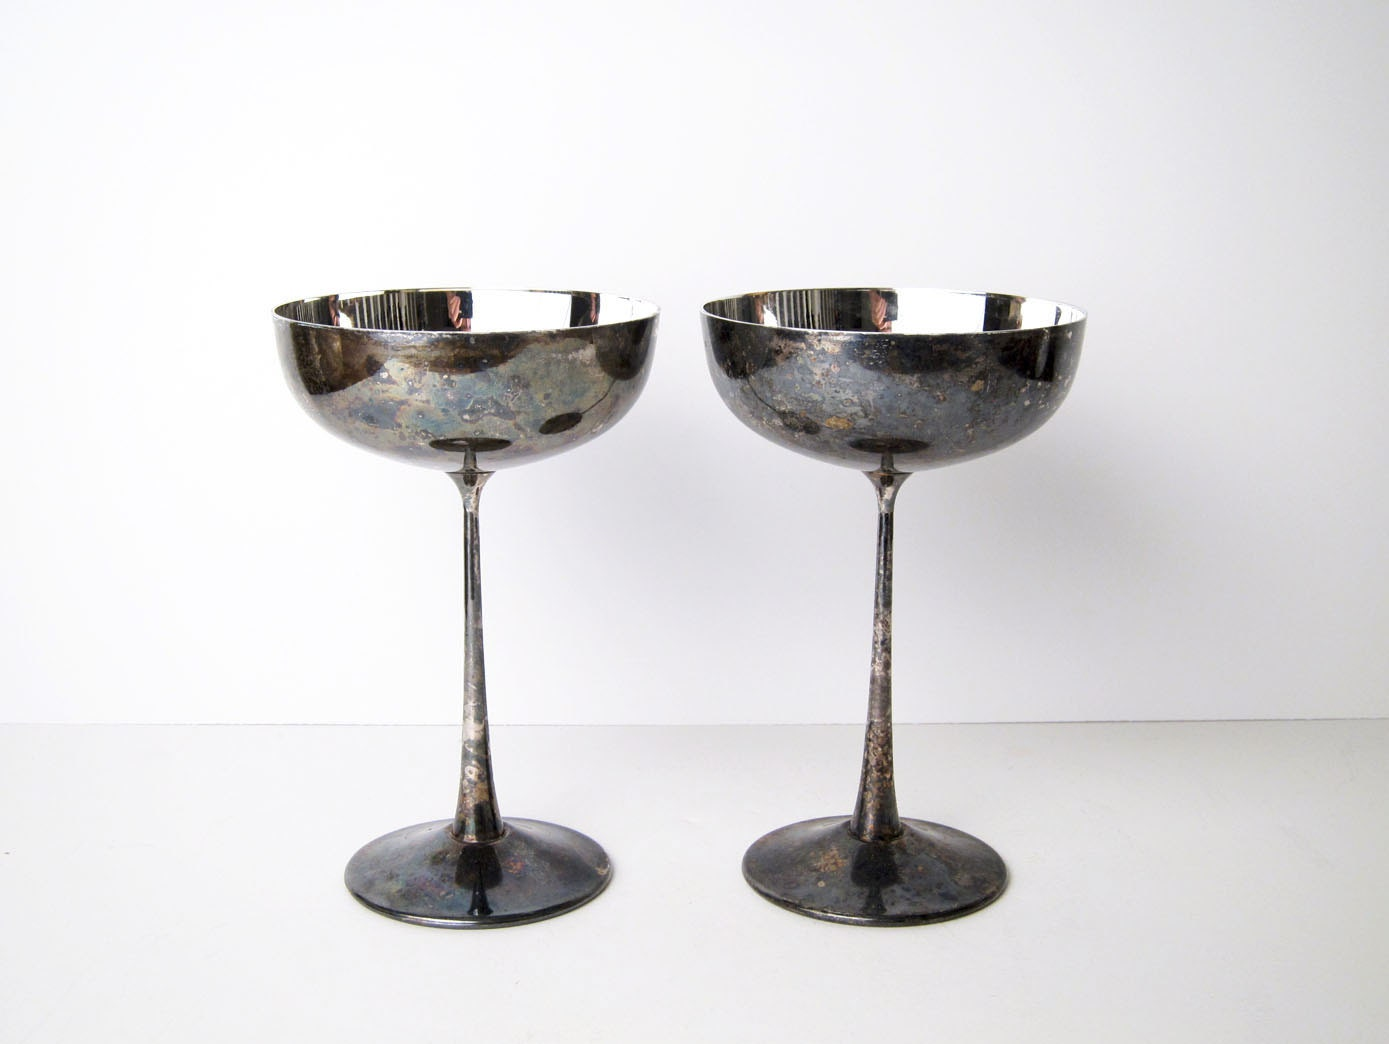 Delberti Italy Silver Plated Modernist Goblets Midcentury